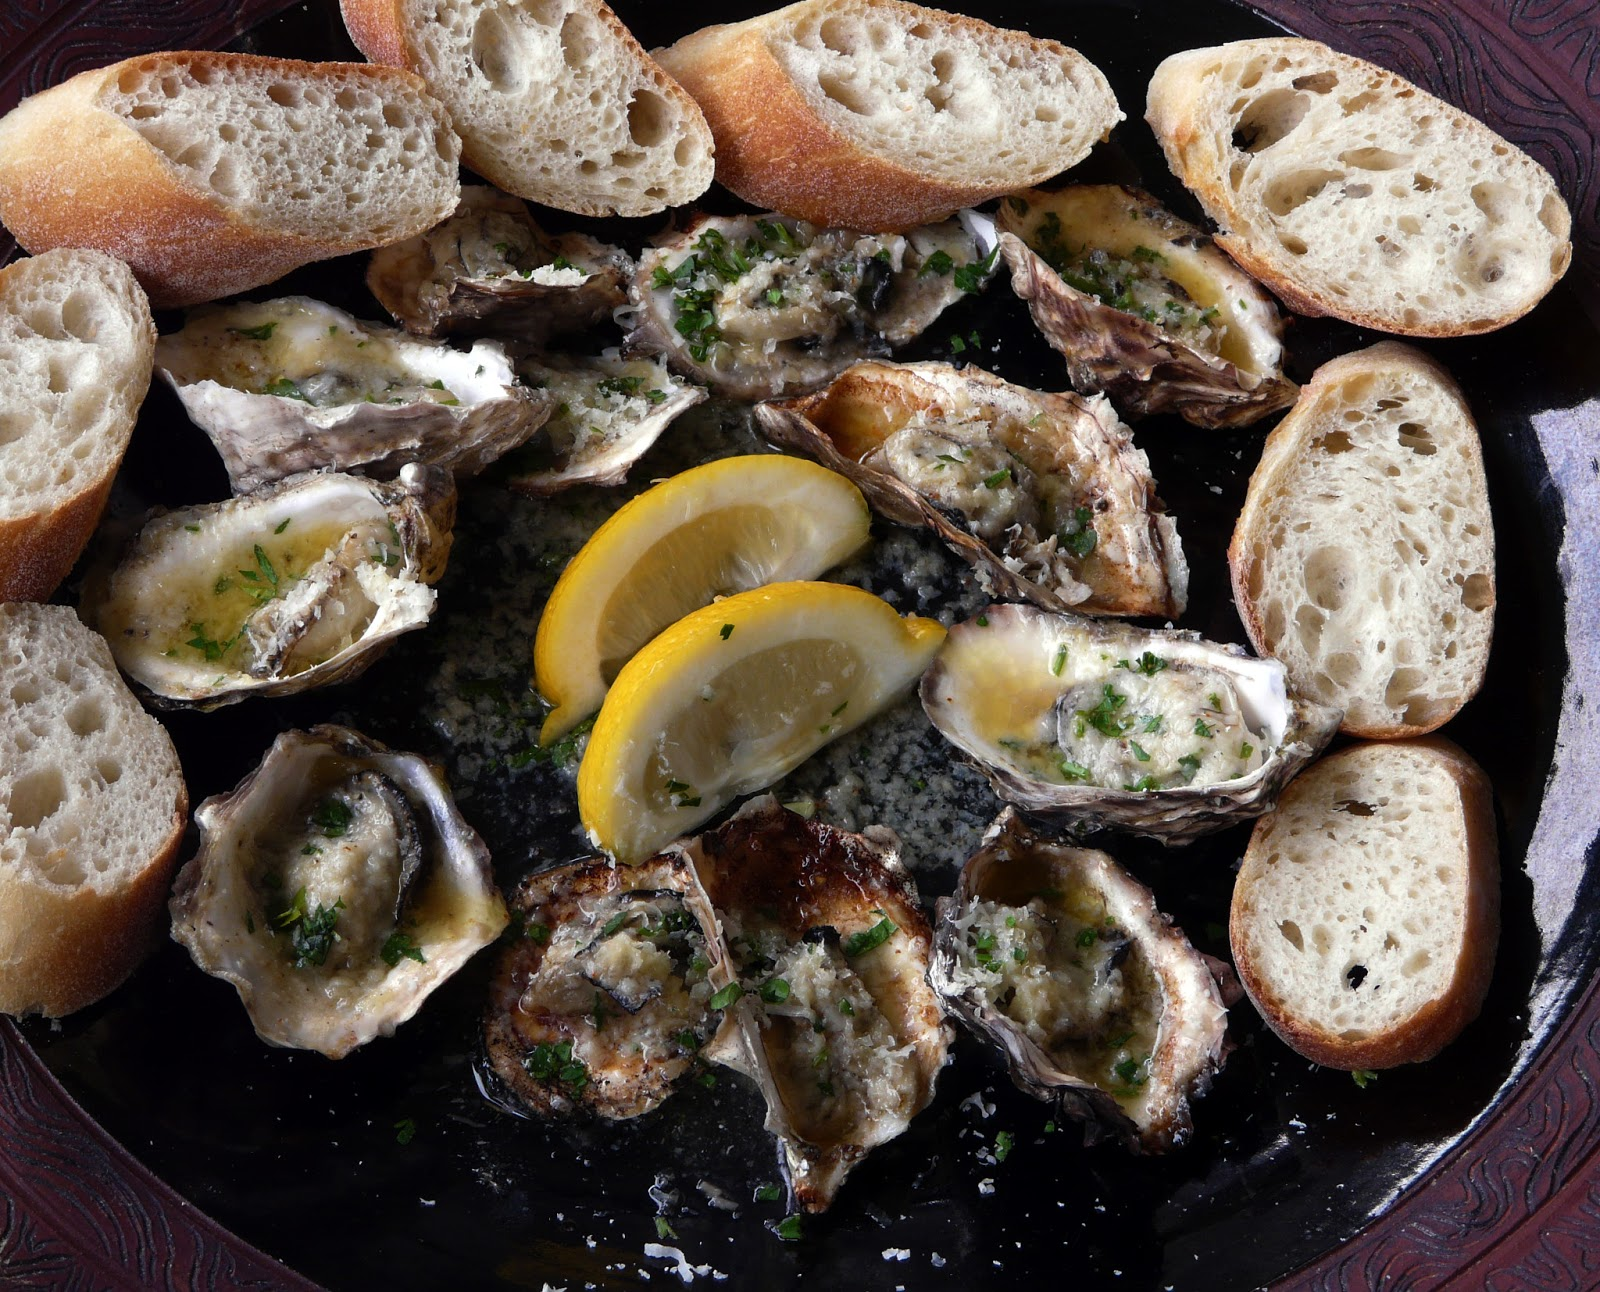 Drago+Style+Grilled+Oysters+March+20th%2C+2013.jpg